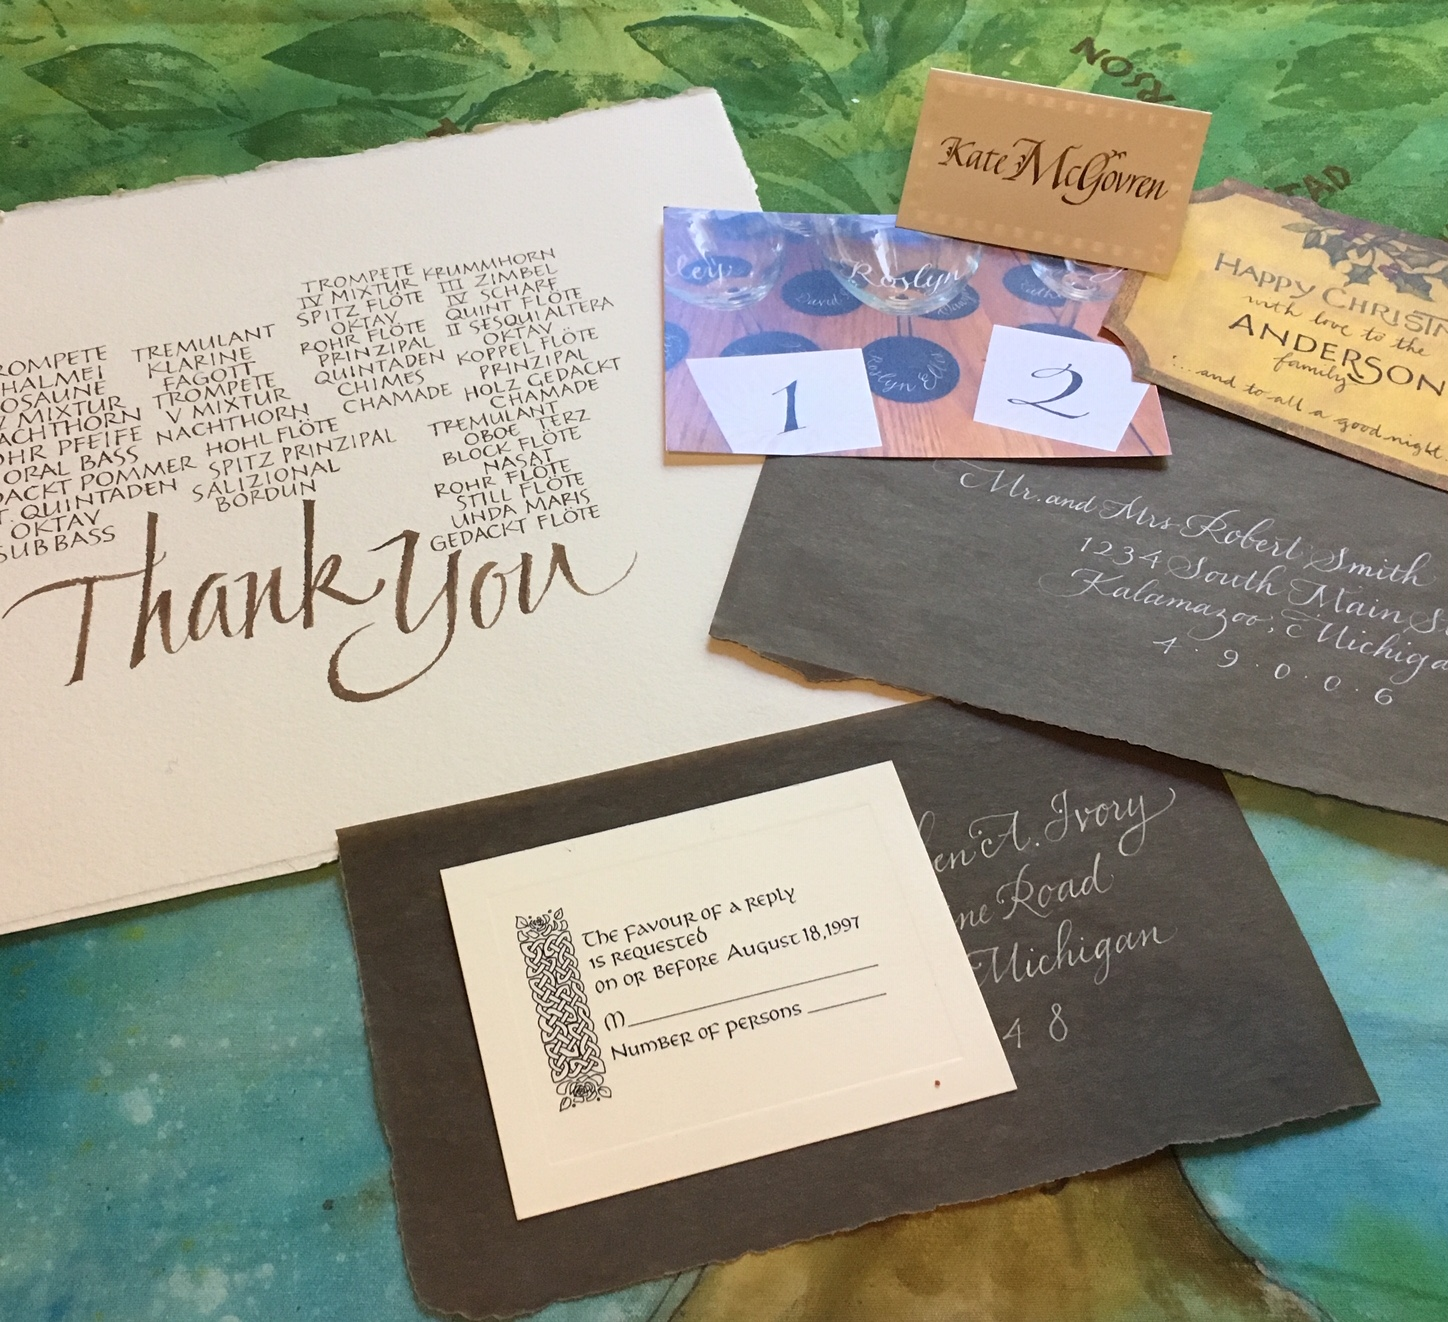 Looking for a Calligrapher? - This listing of Pen Dragons members is a good place to start.